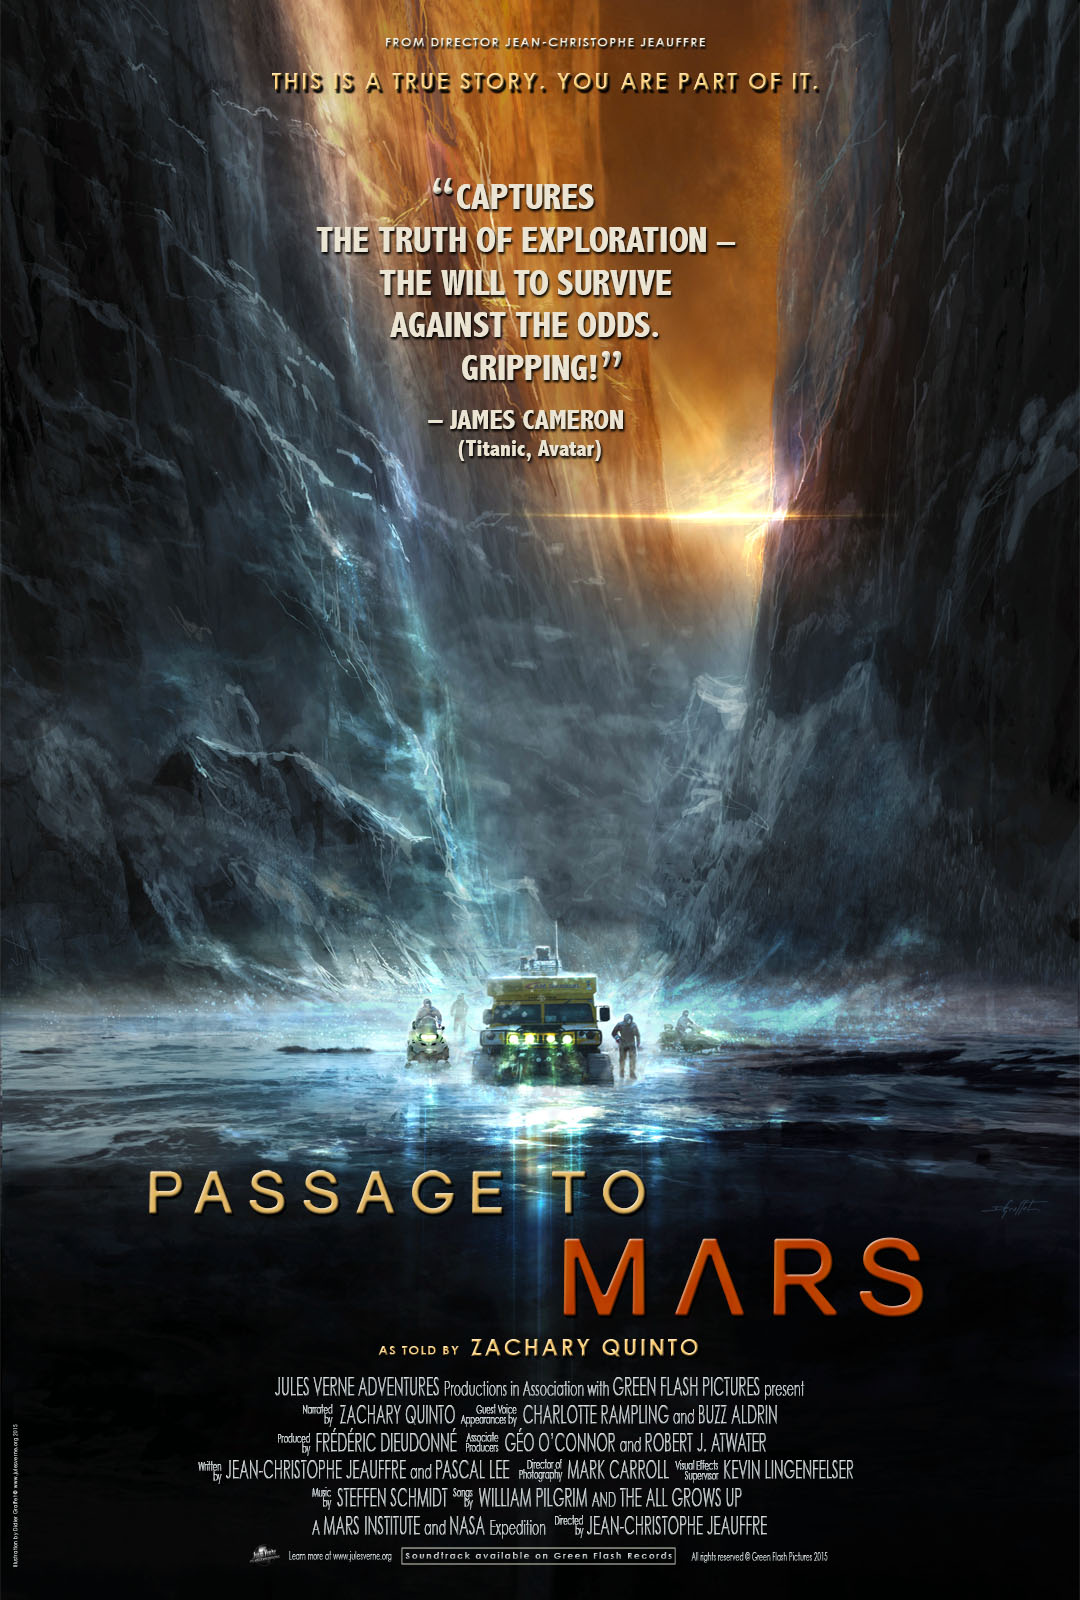 'Passage to Mars': New Film Follows Voyage to 'Mars on Earth'